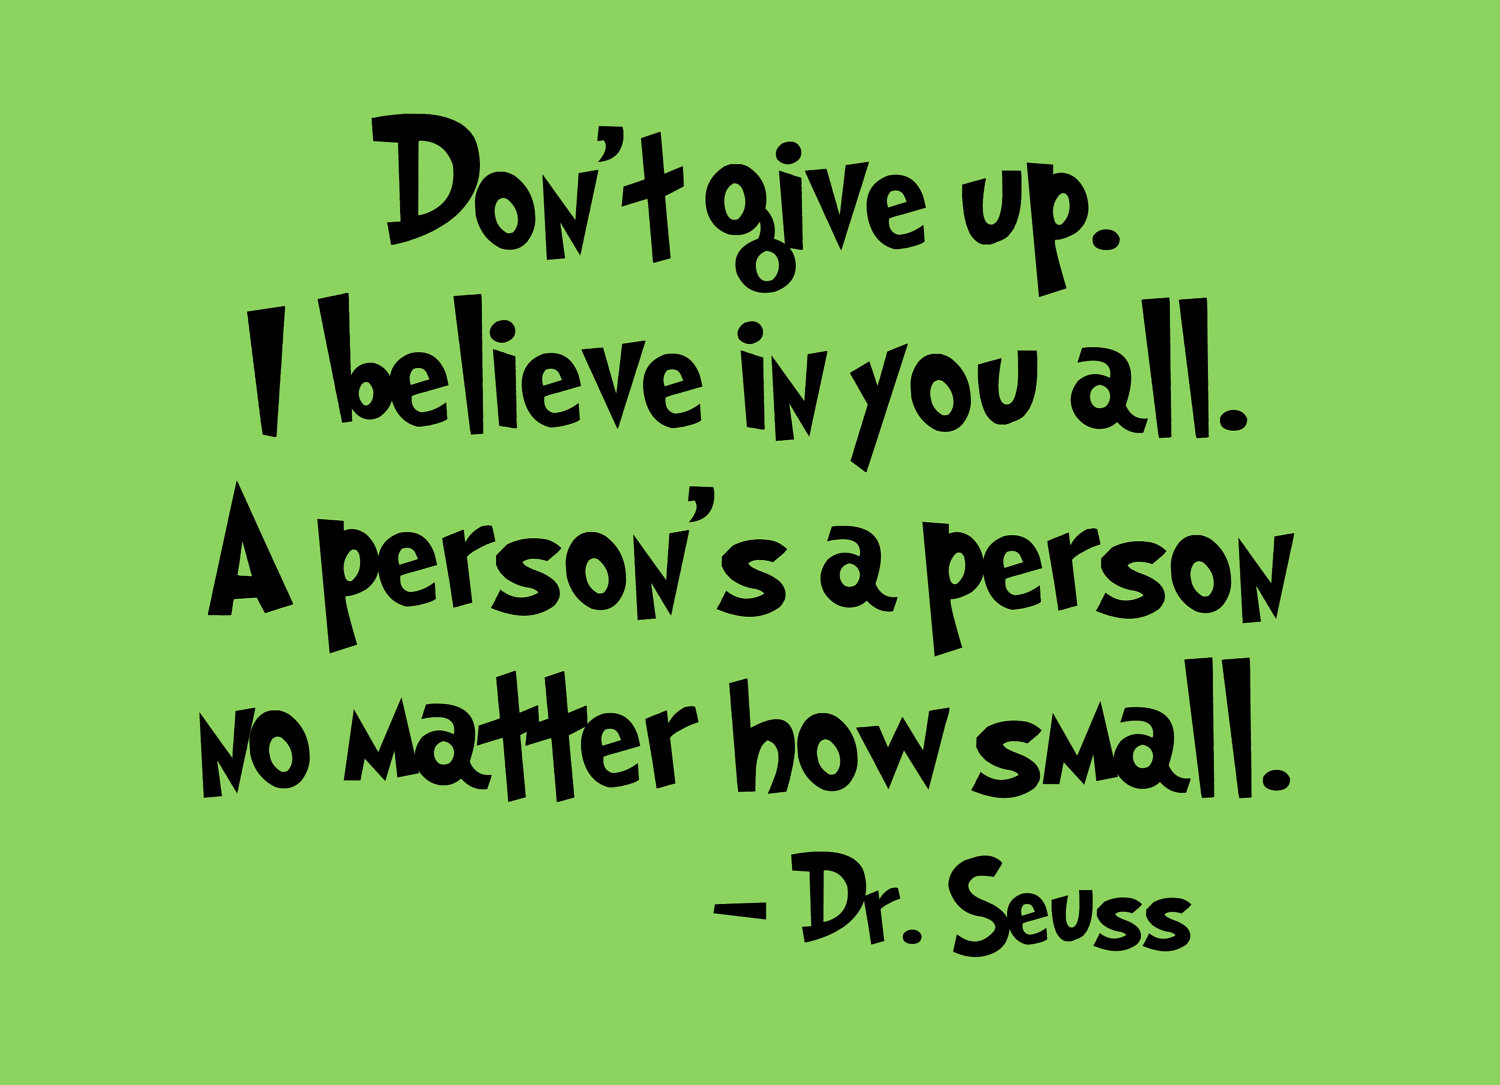 Birthday Quotes For Doctors: Dr Seuss Quotes About Bullying. QuotesGram